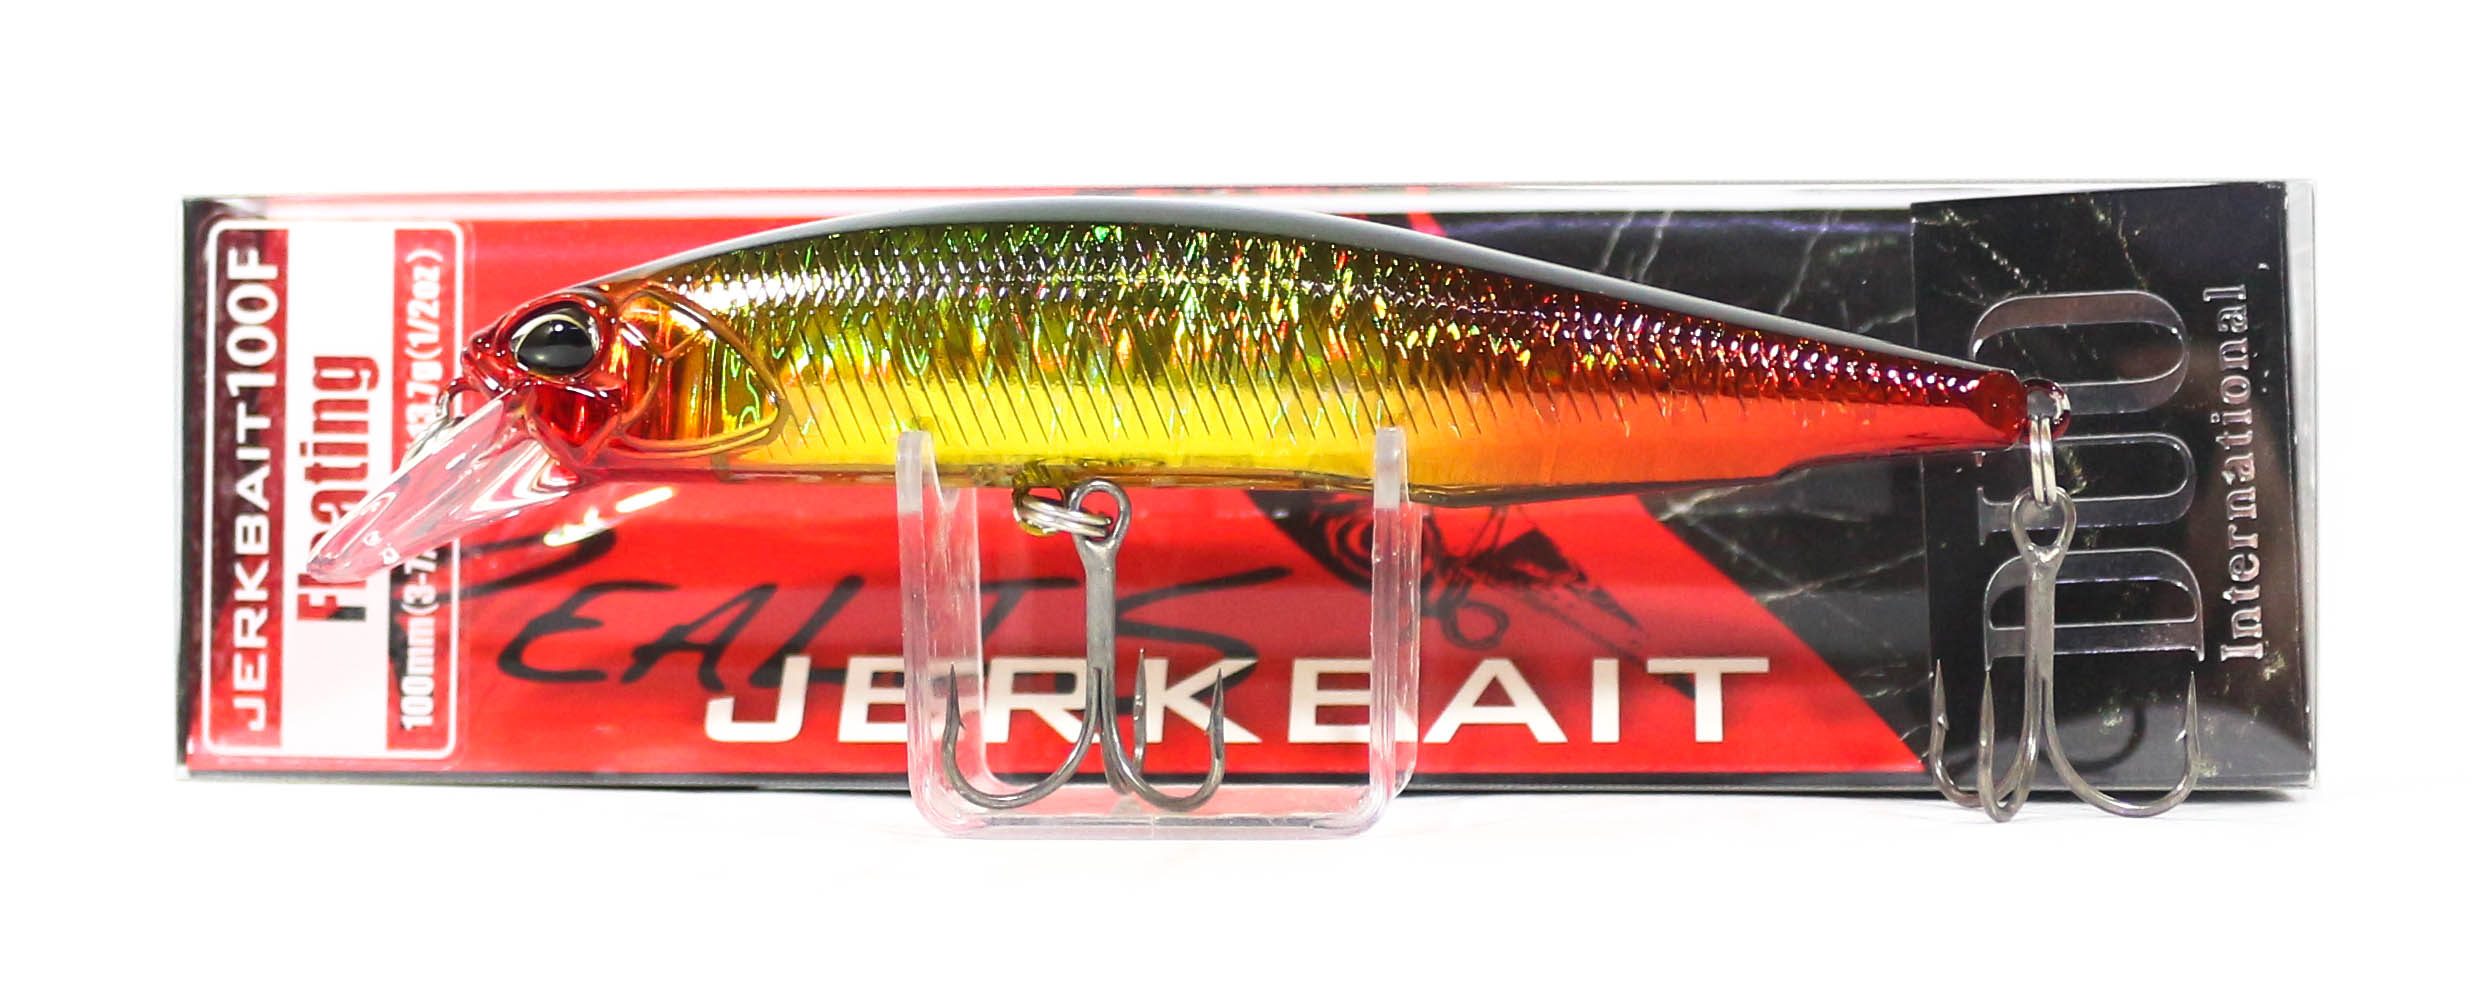 Duo Realis Jerkbait 100F Floating Lure GPA3244 (1519)